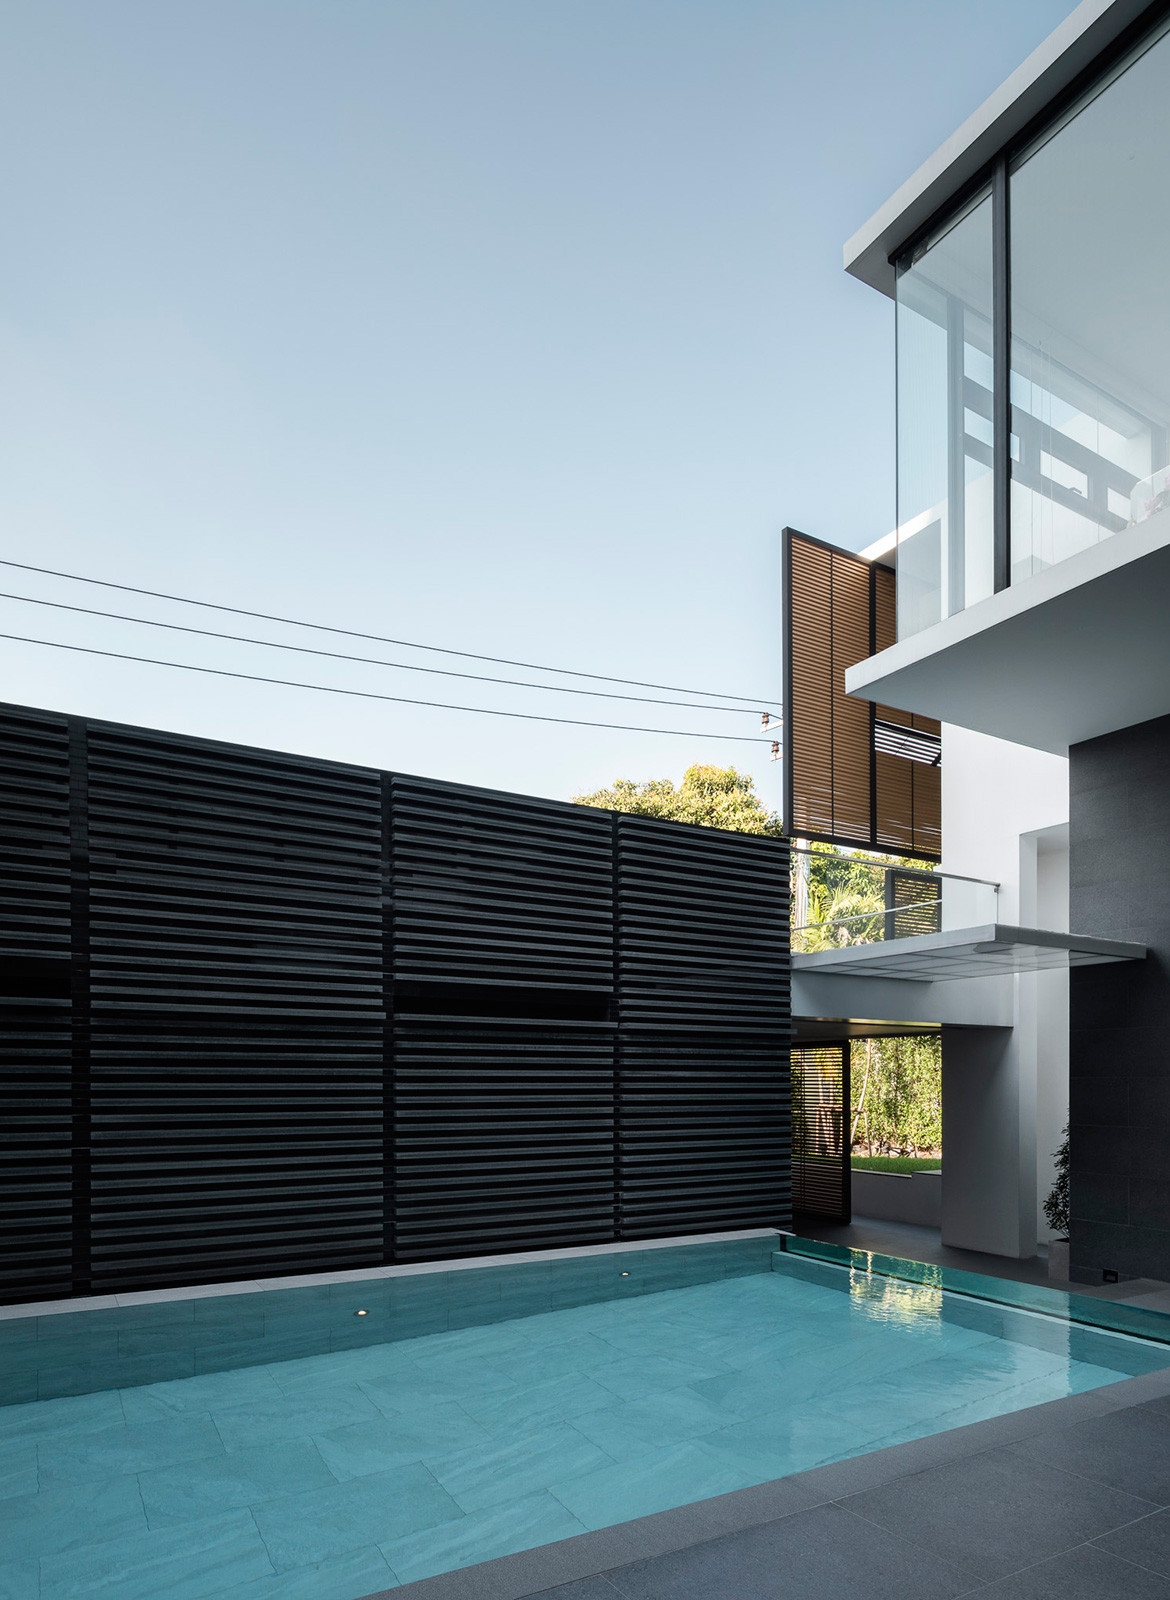 Screen House Archimontage cc Chalermwat Wongchompoo pool and screen